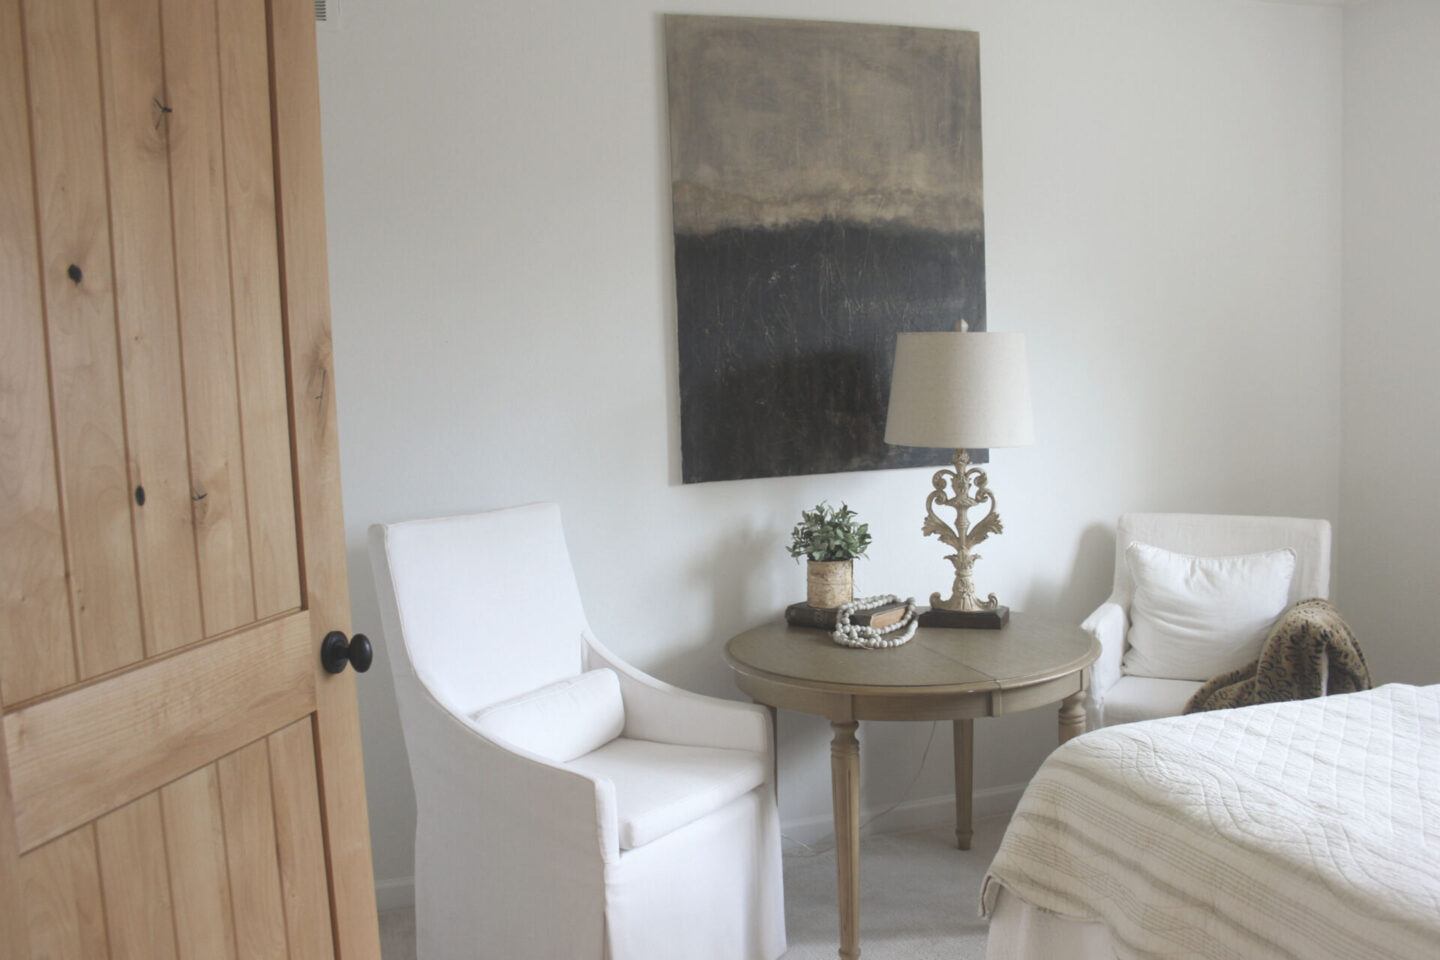 Rustic knotty alder door opens into white bedroom with Belgian style furniture and abstract painting by Hello Lovely Studio. #alderdoor #europeancountrydecor #hellolovelystudio